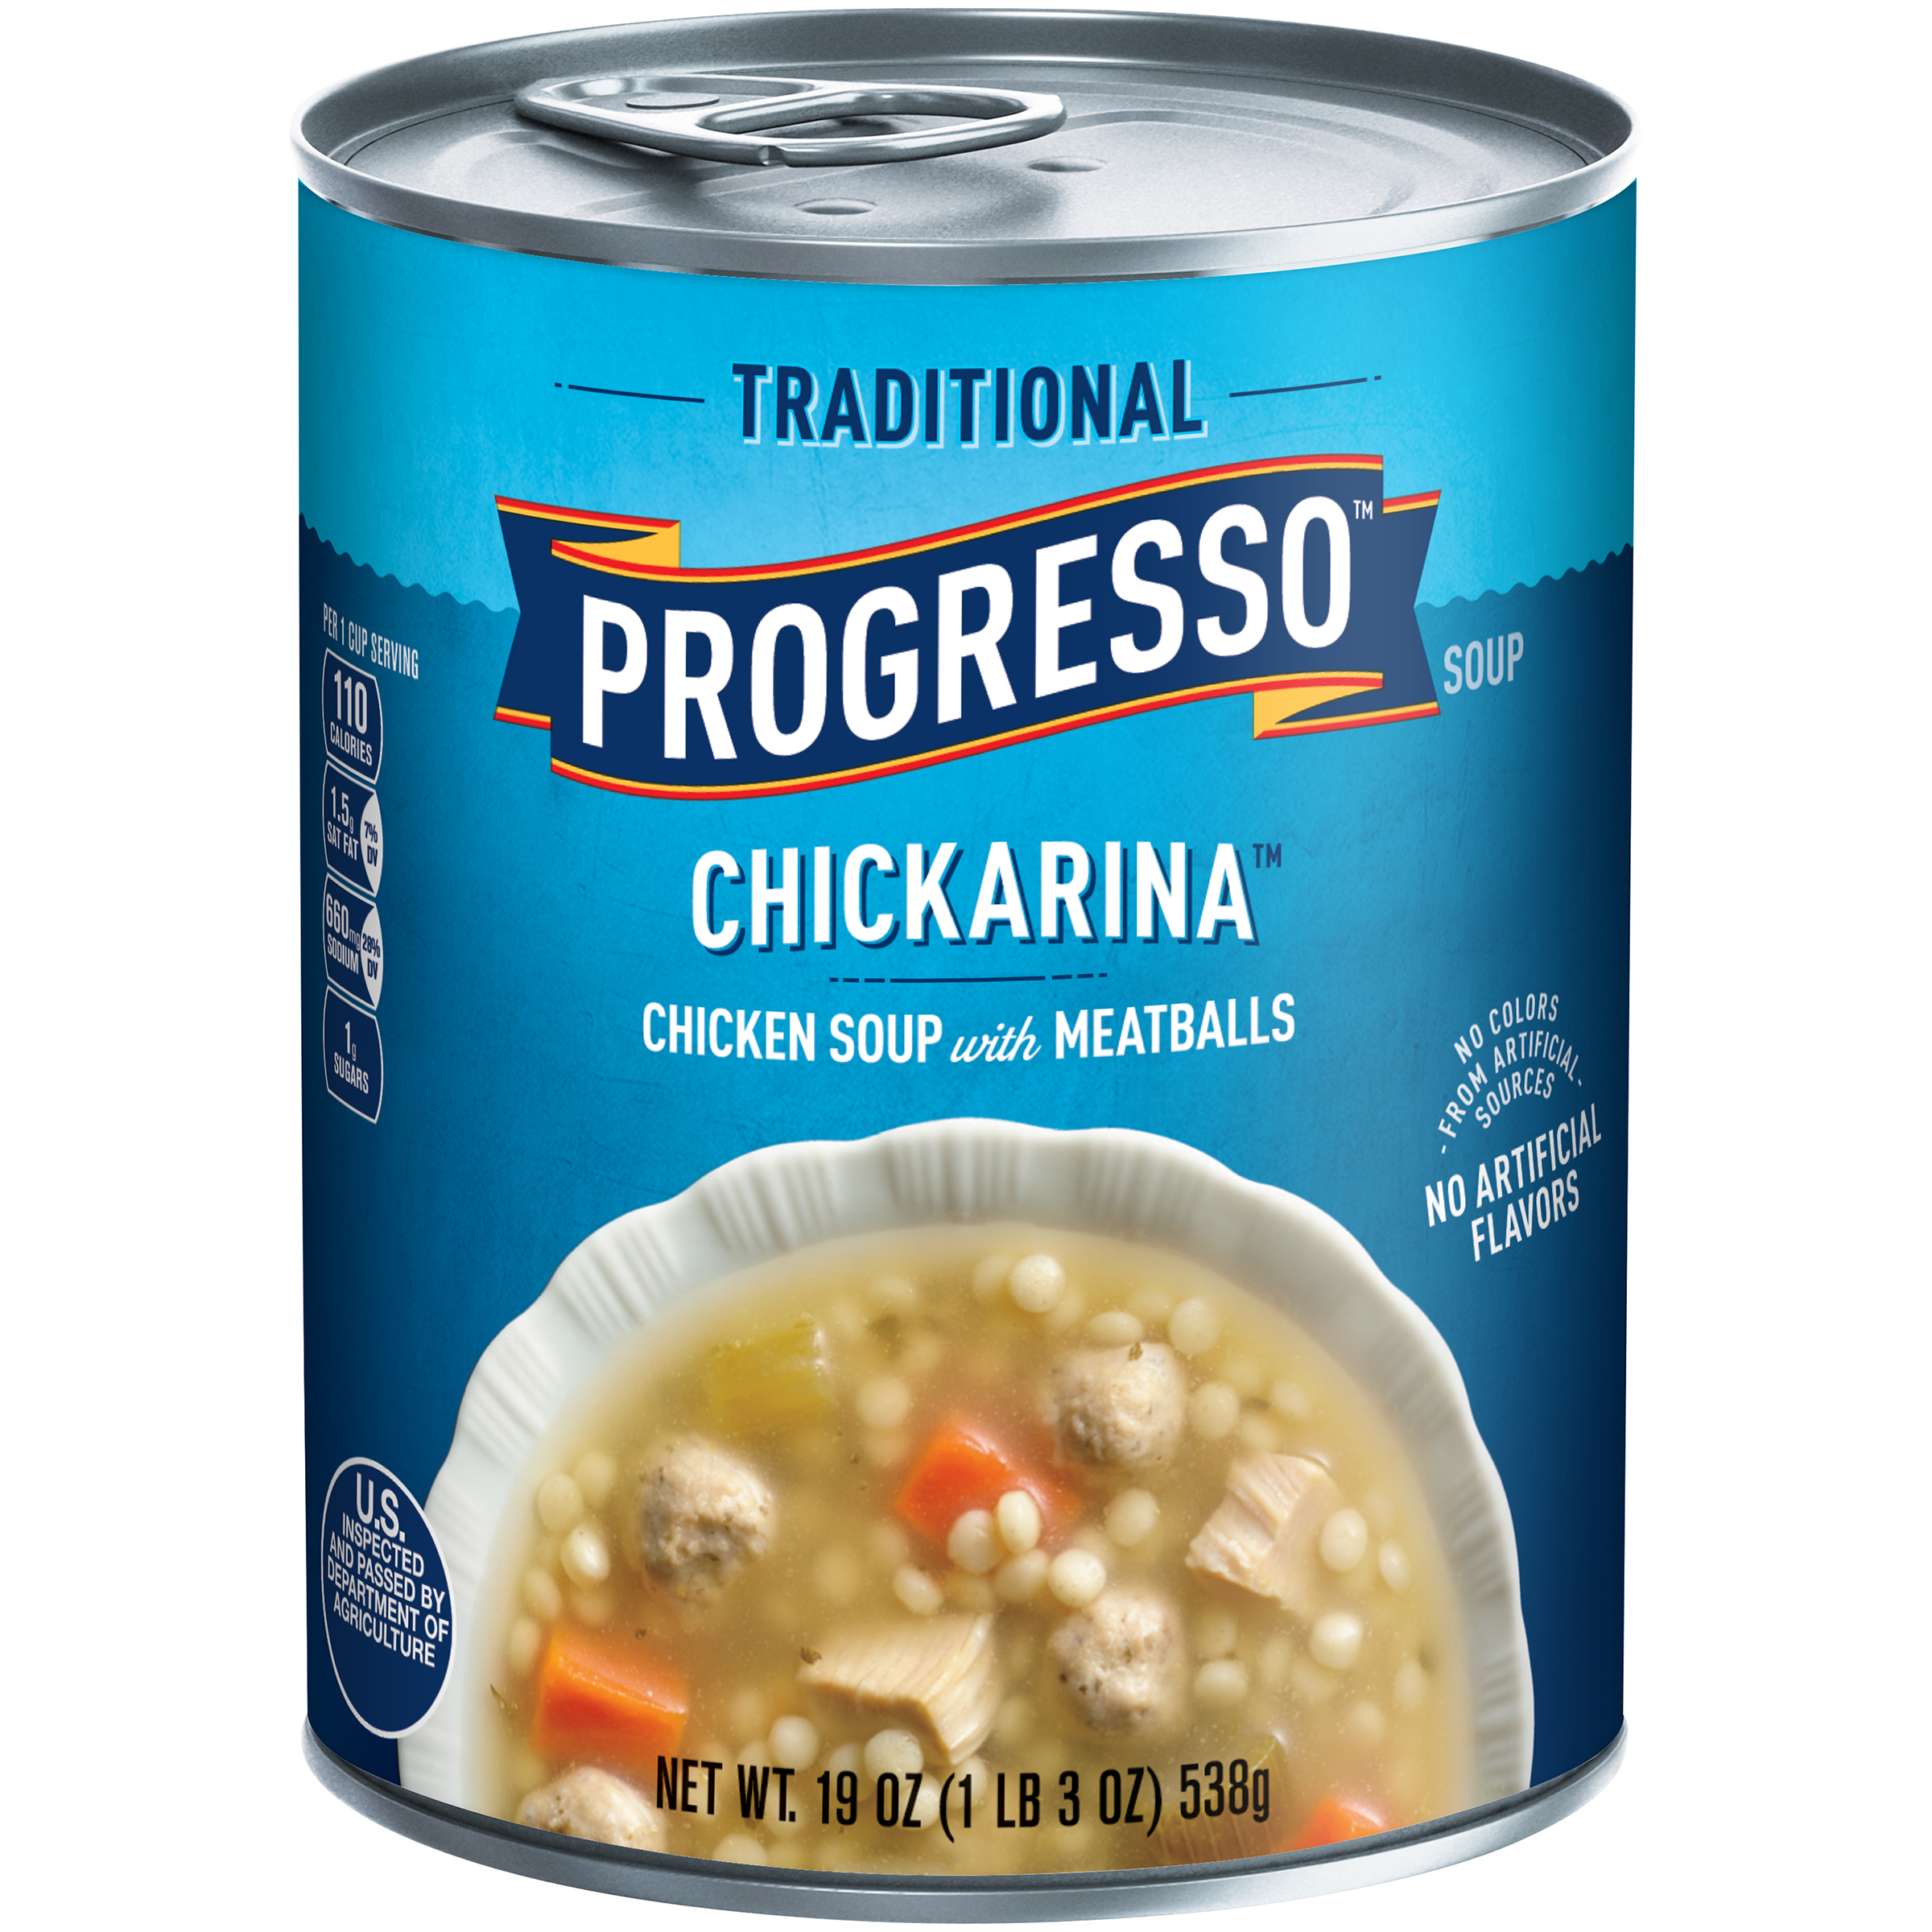 Progresso Traditional Chickarina Soup 19 oz. Can